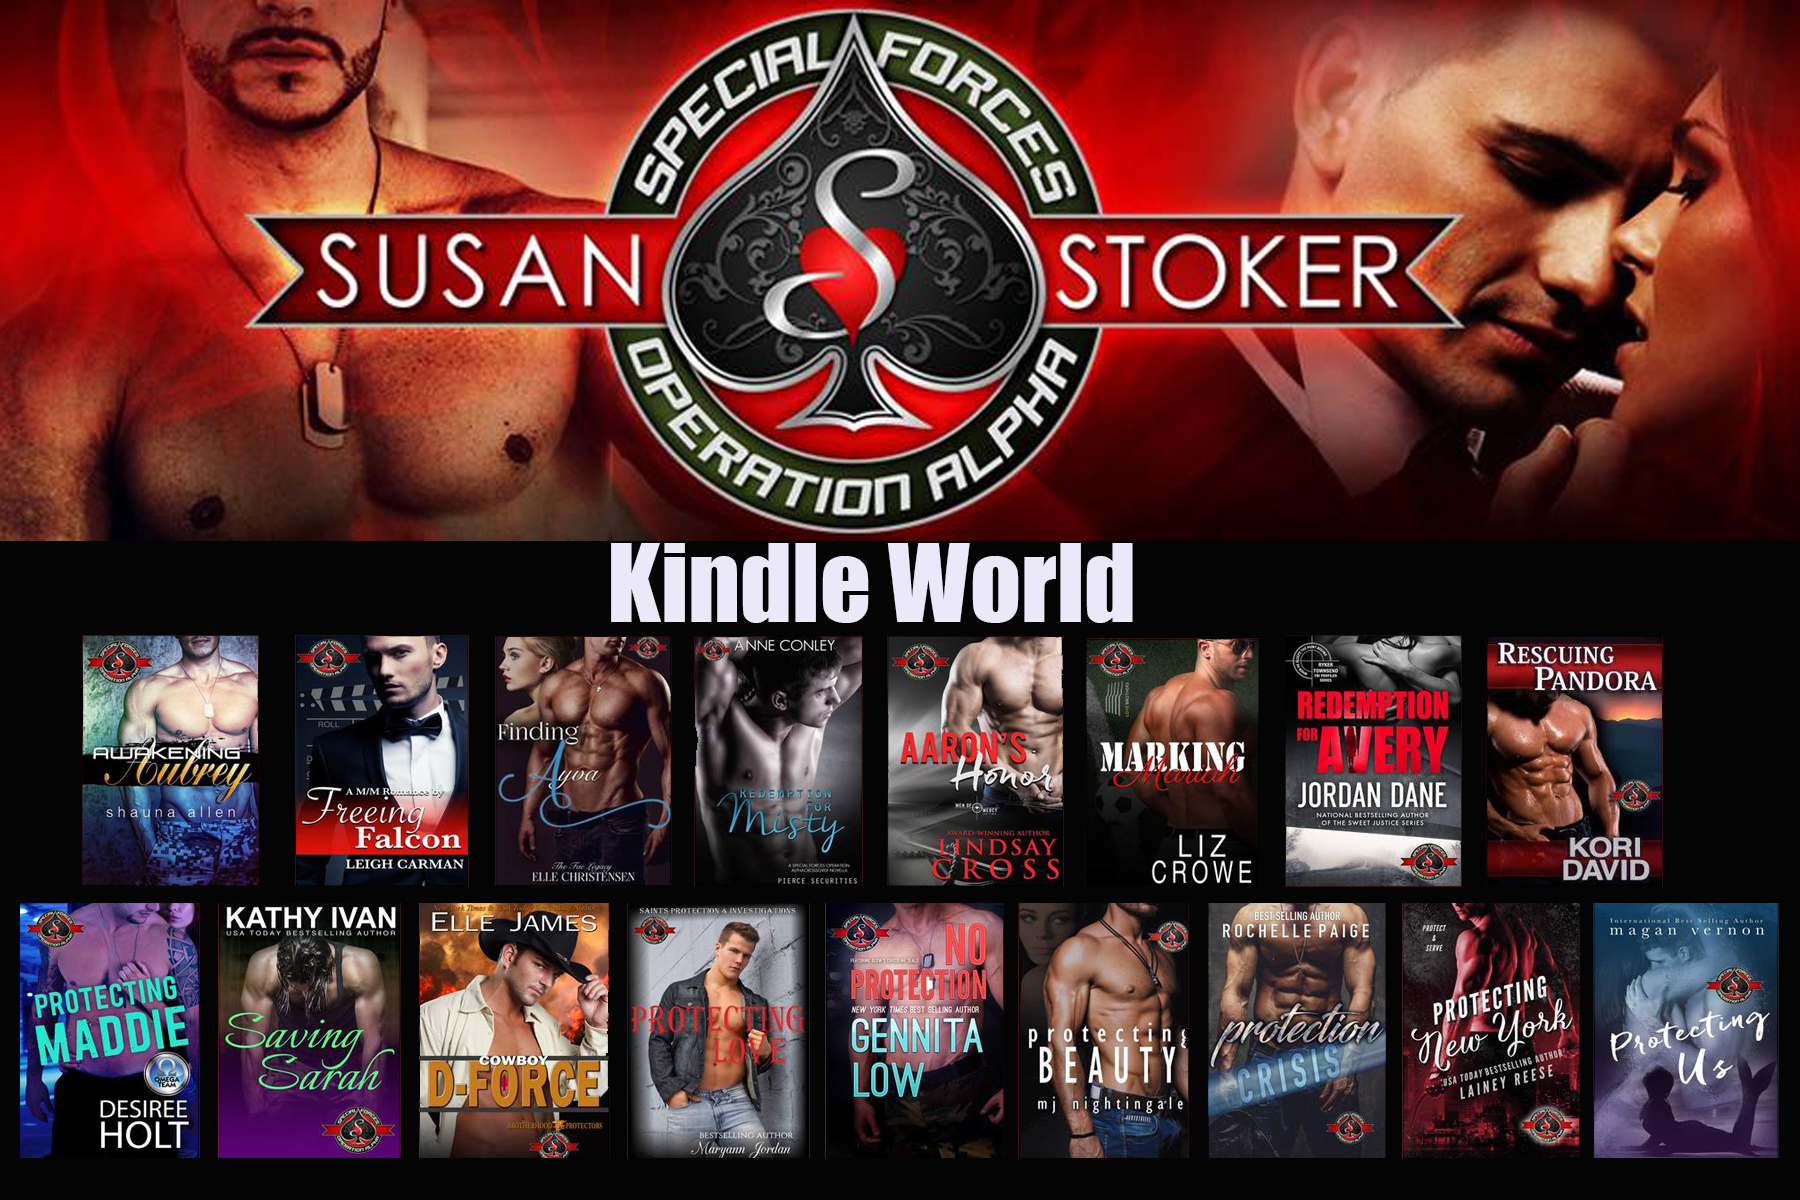 Susan Stoker - Special Forces: Operation Alpha Kindle World Announcement